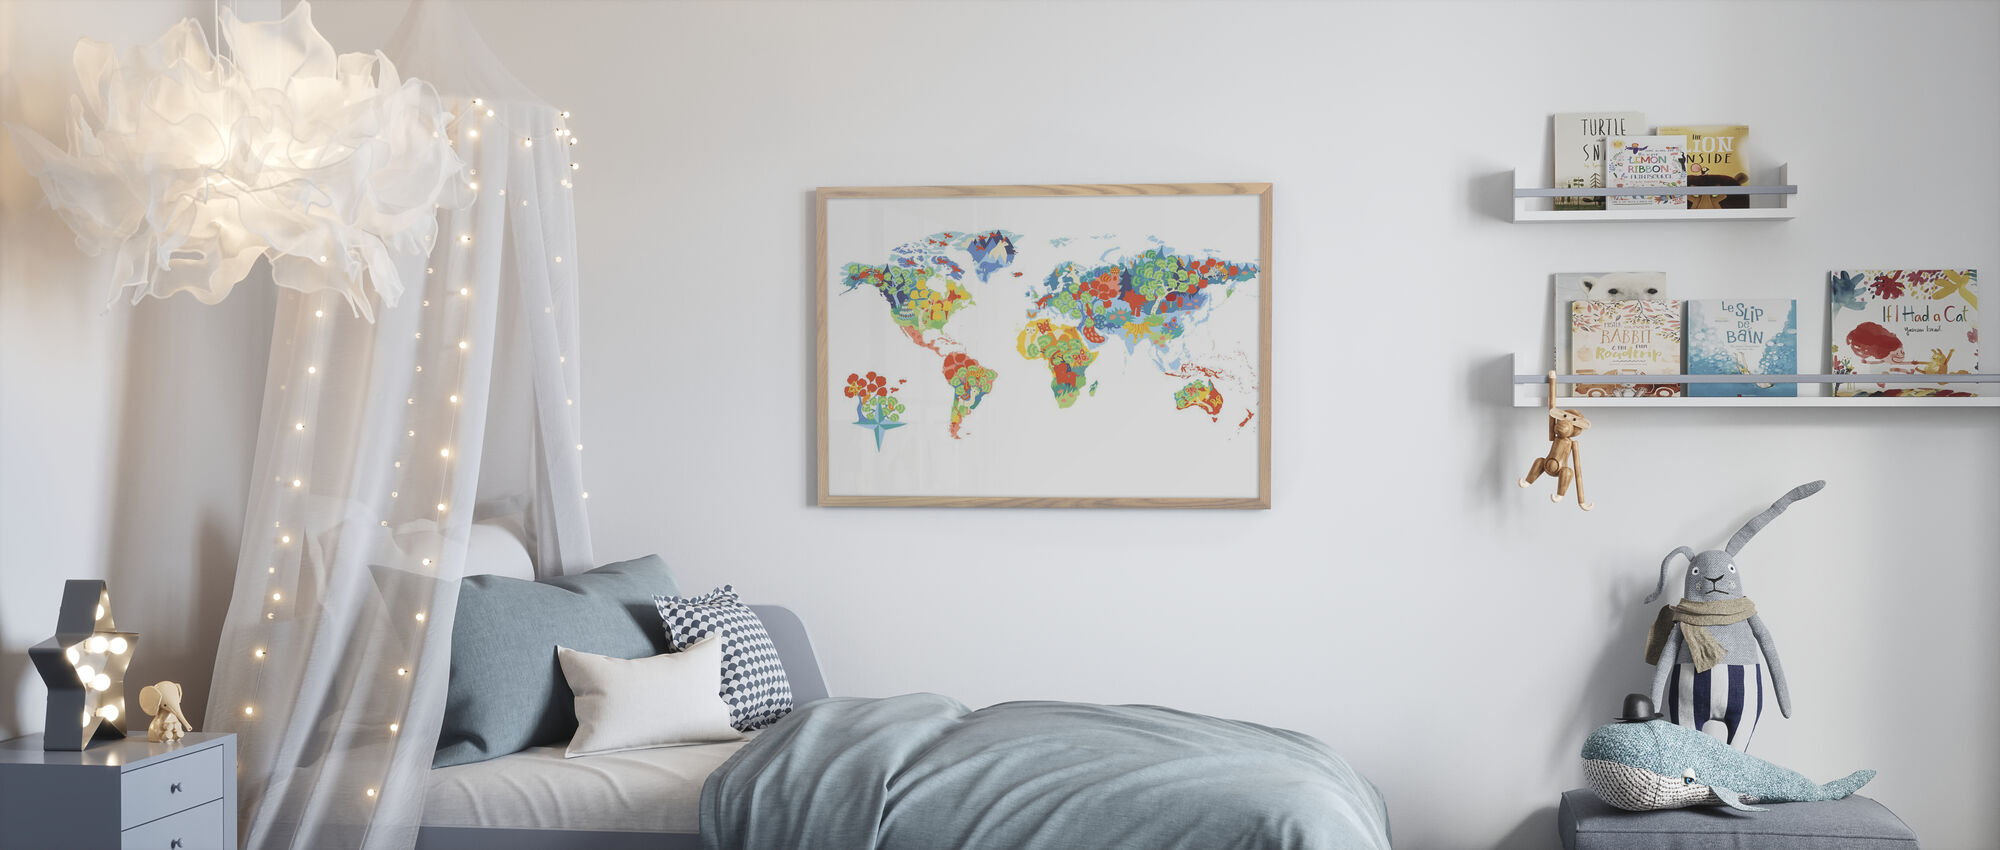 Wonderful World - Poster - Kids Room